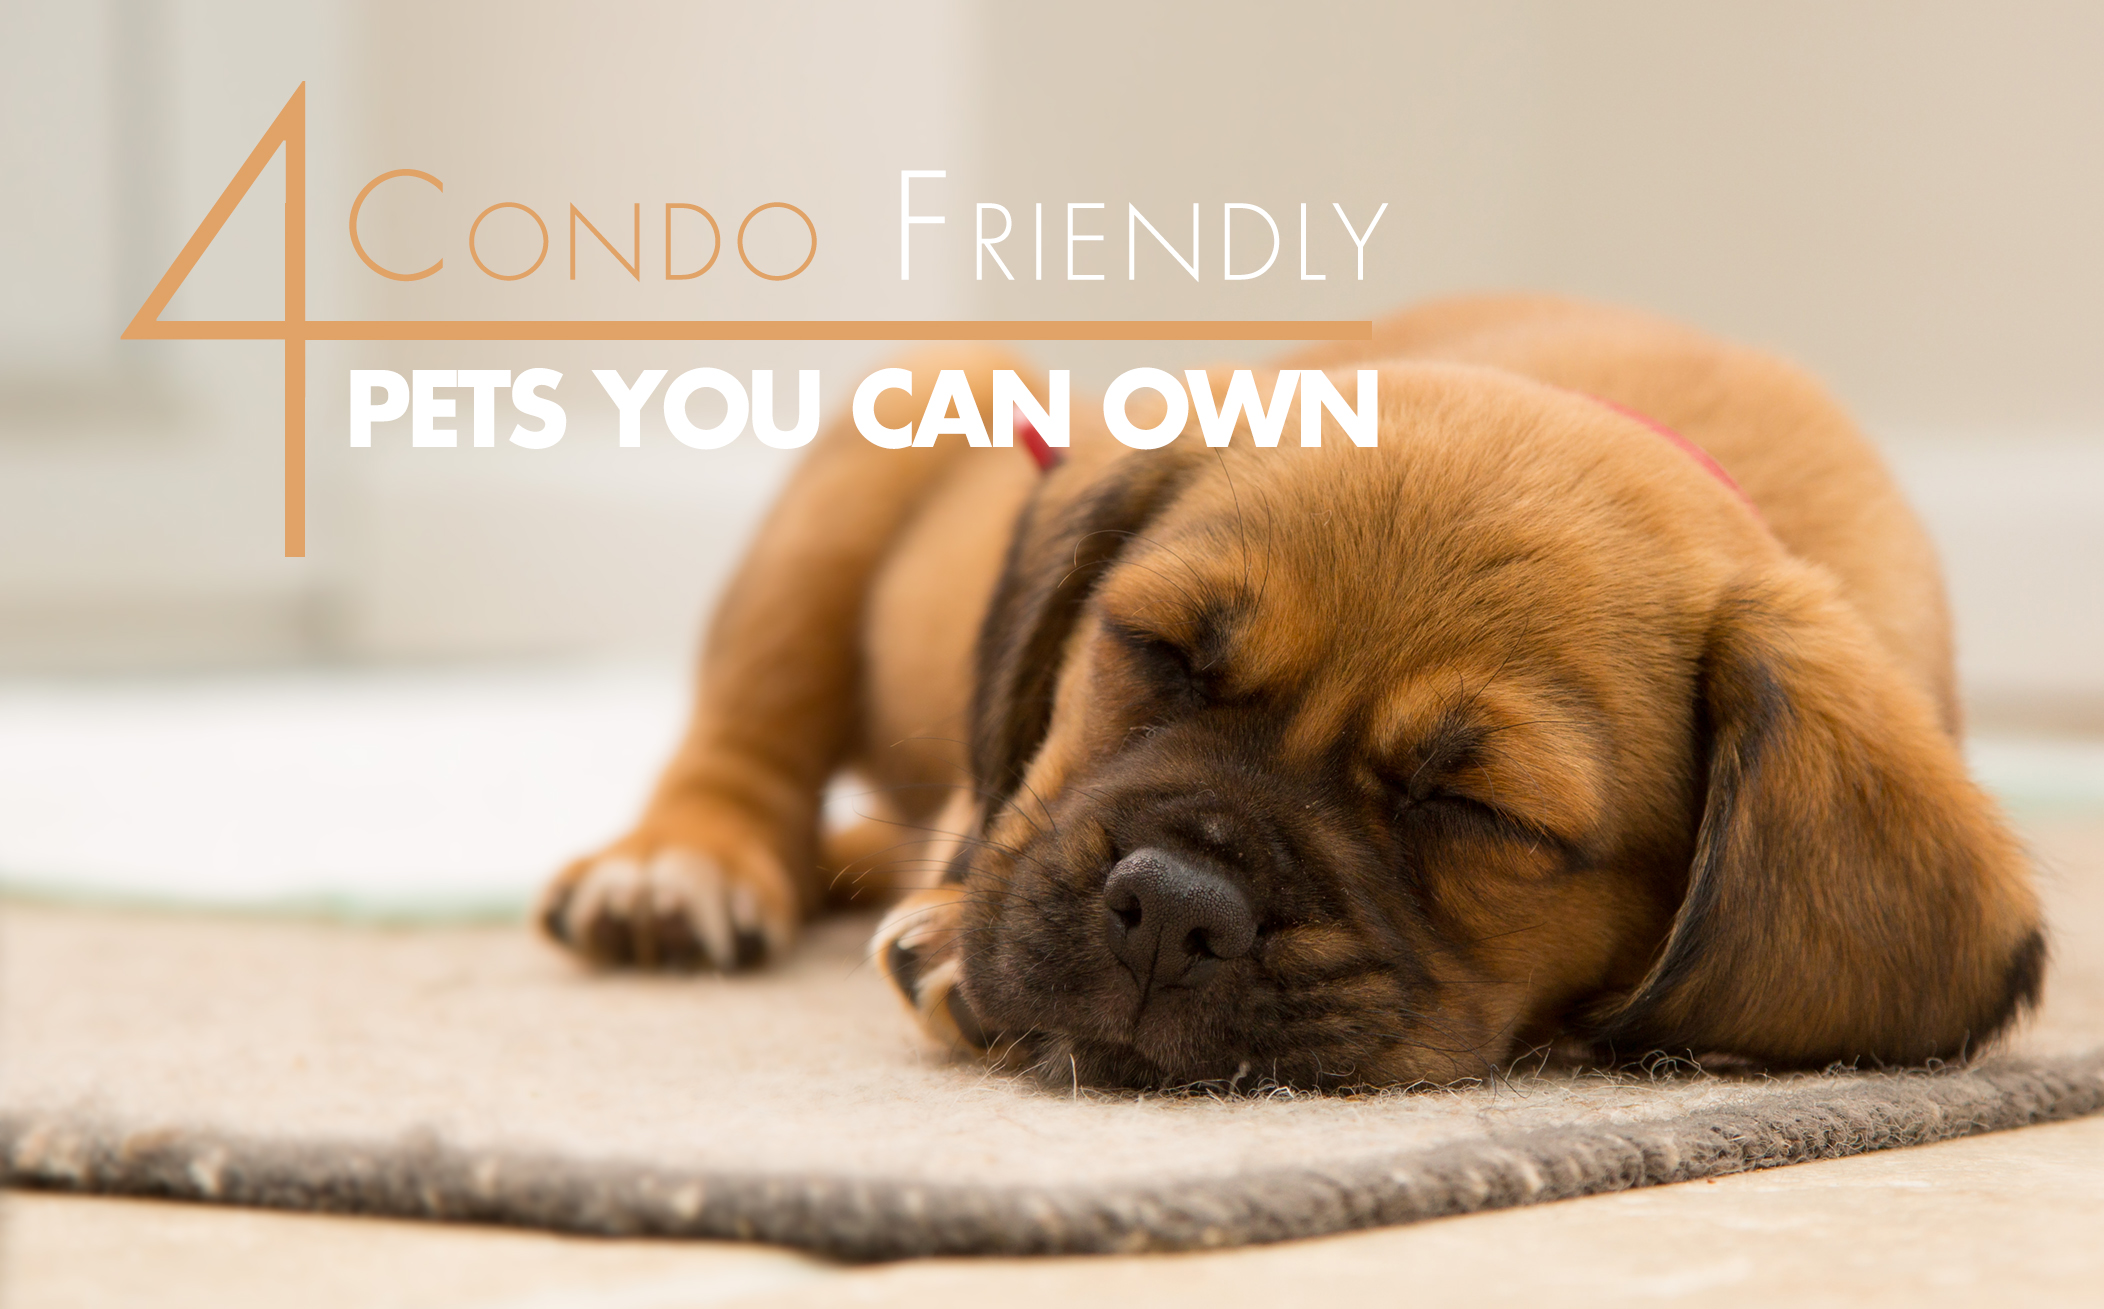 4 Condo-Friendly Pets You Can Own